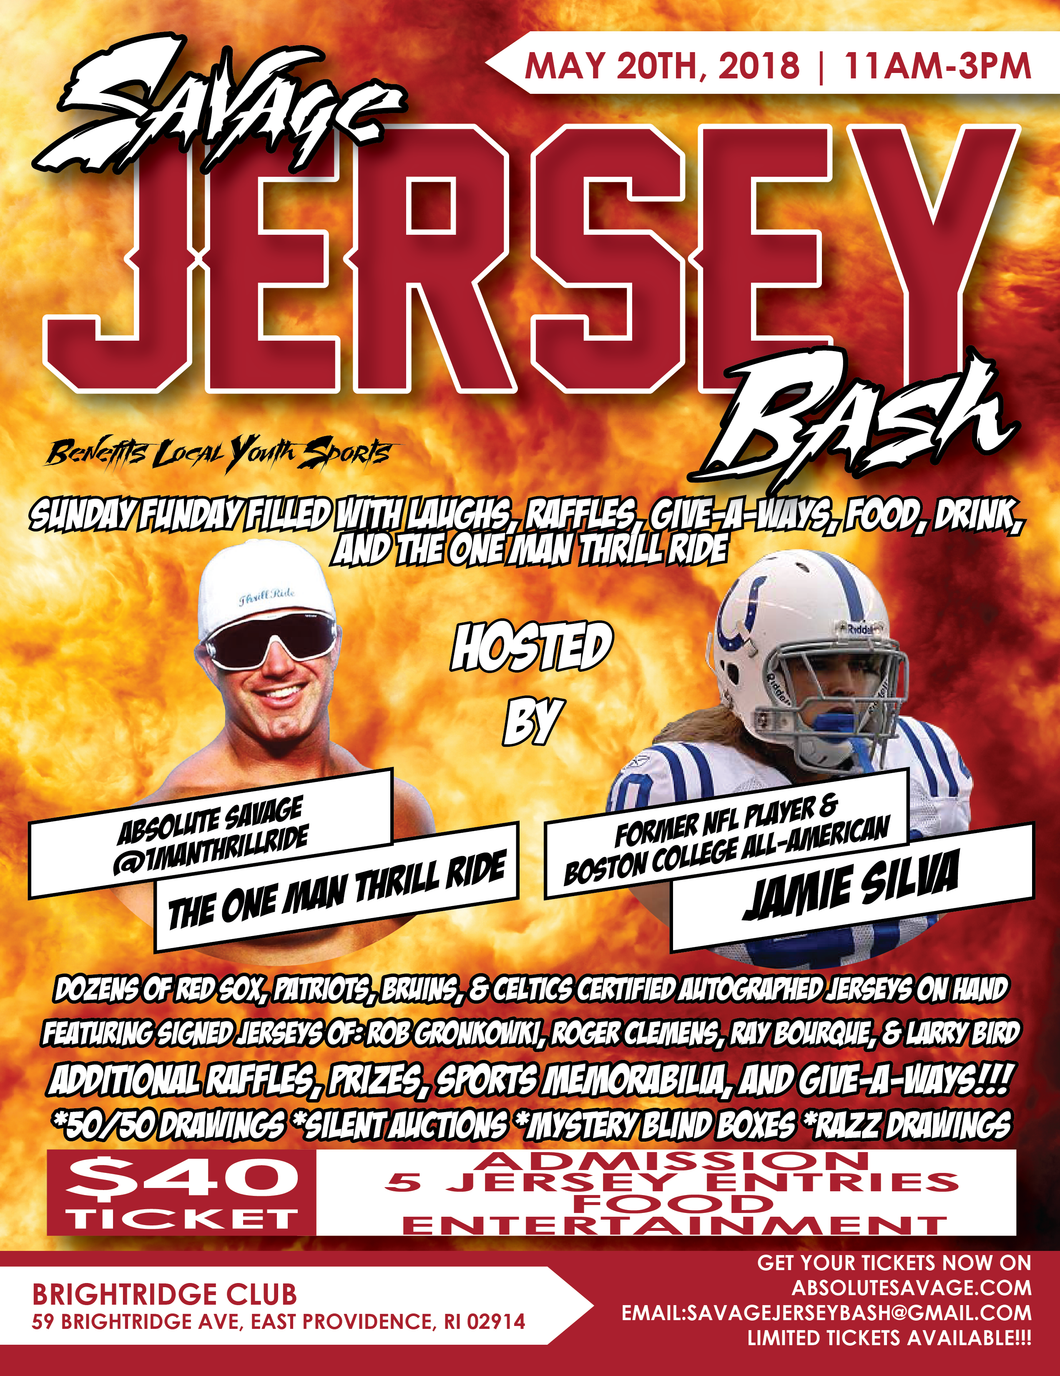 JERSEY BASH TICKET Hosted by ThrillRide and Jamie Silva: Absolute Savage